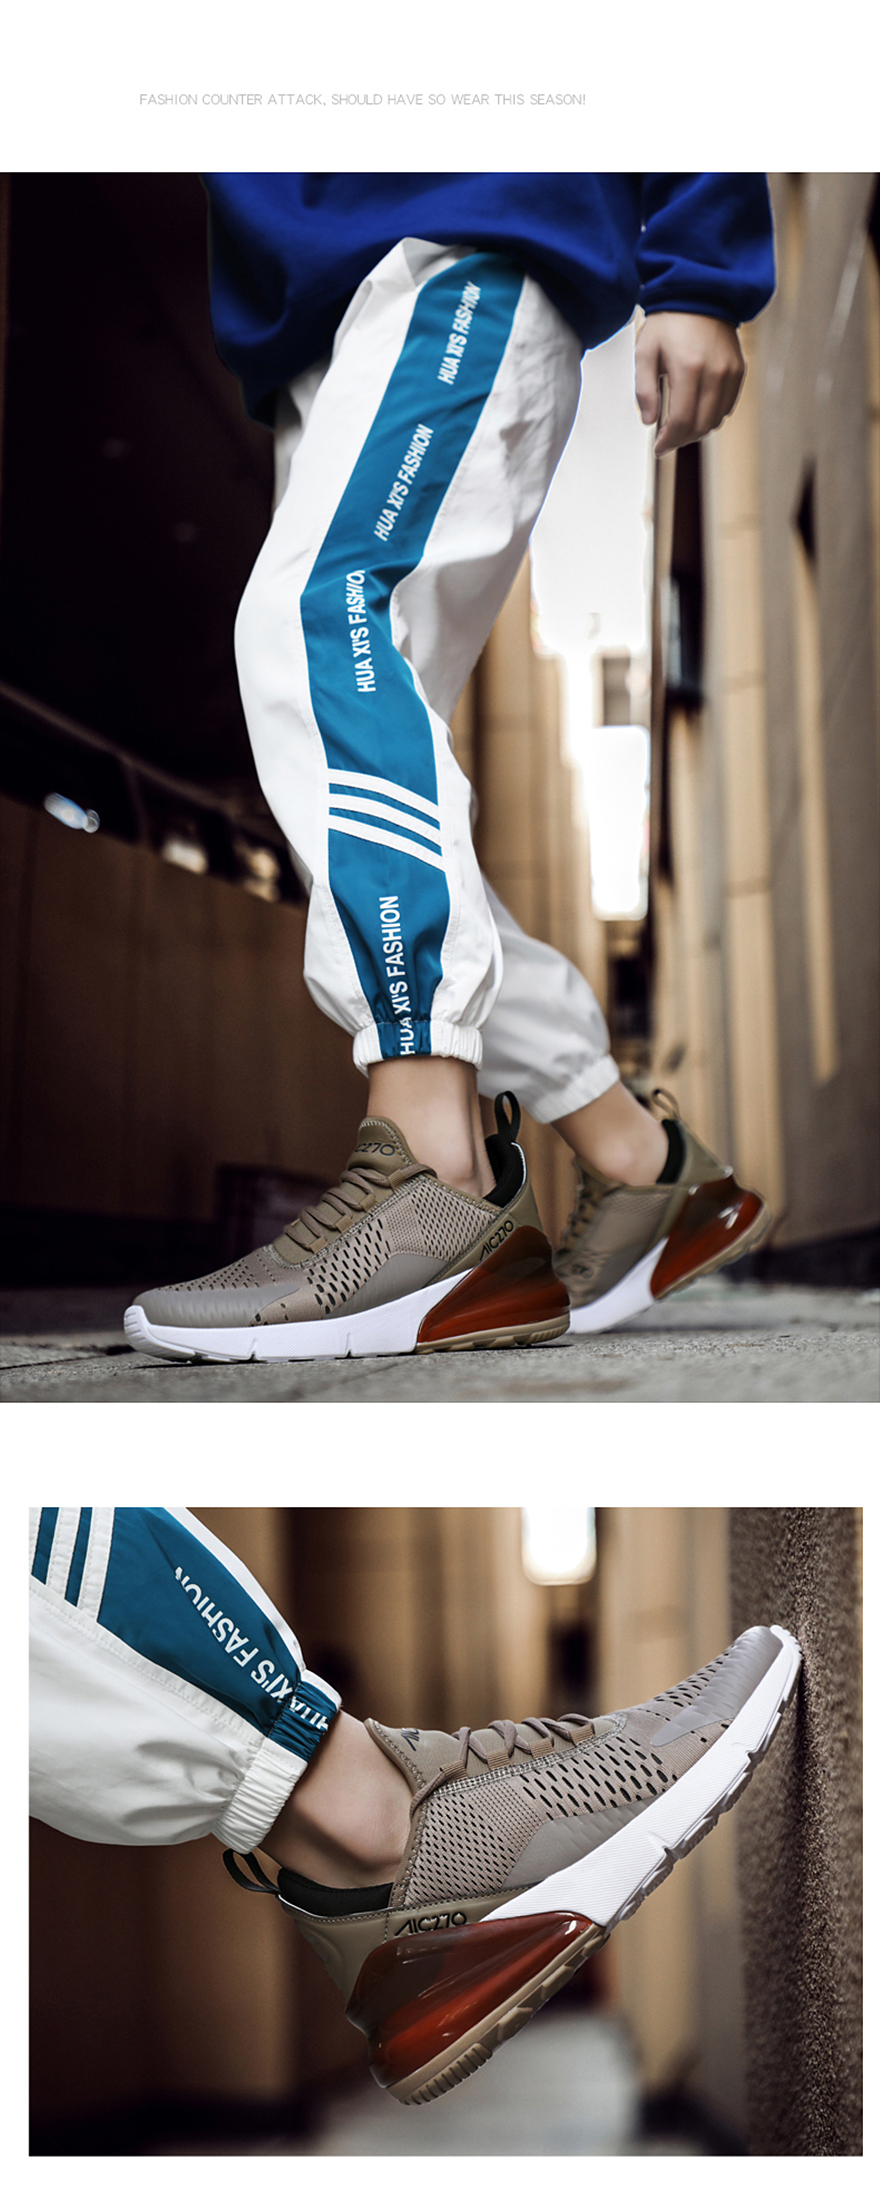 HTB1eYb5RgHqK1RjSZFPq6AwapXaR 2019 Casual Shoes Men Lightweight Running Male Shoes Breathable Mesh Sport Men Sneakers Flat Outdoor Footwear Summer Trainers